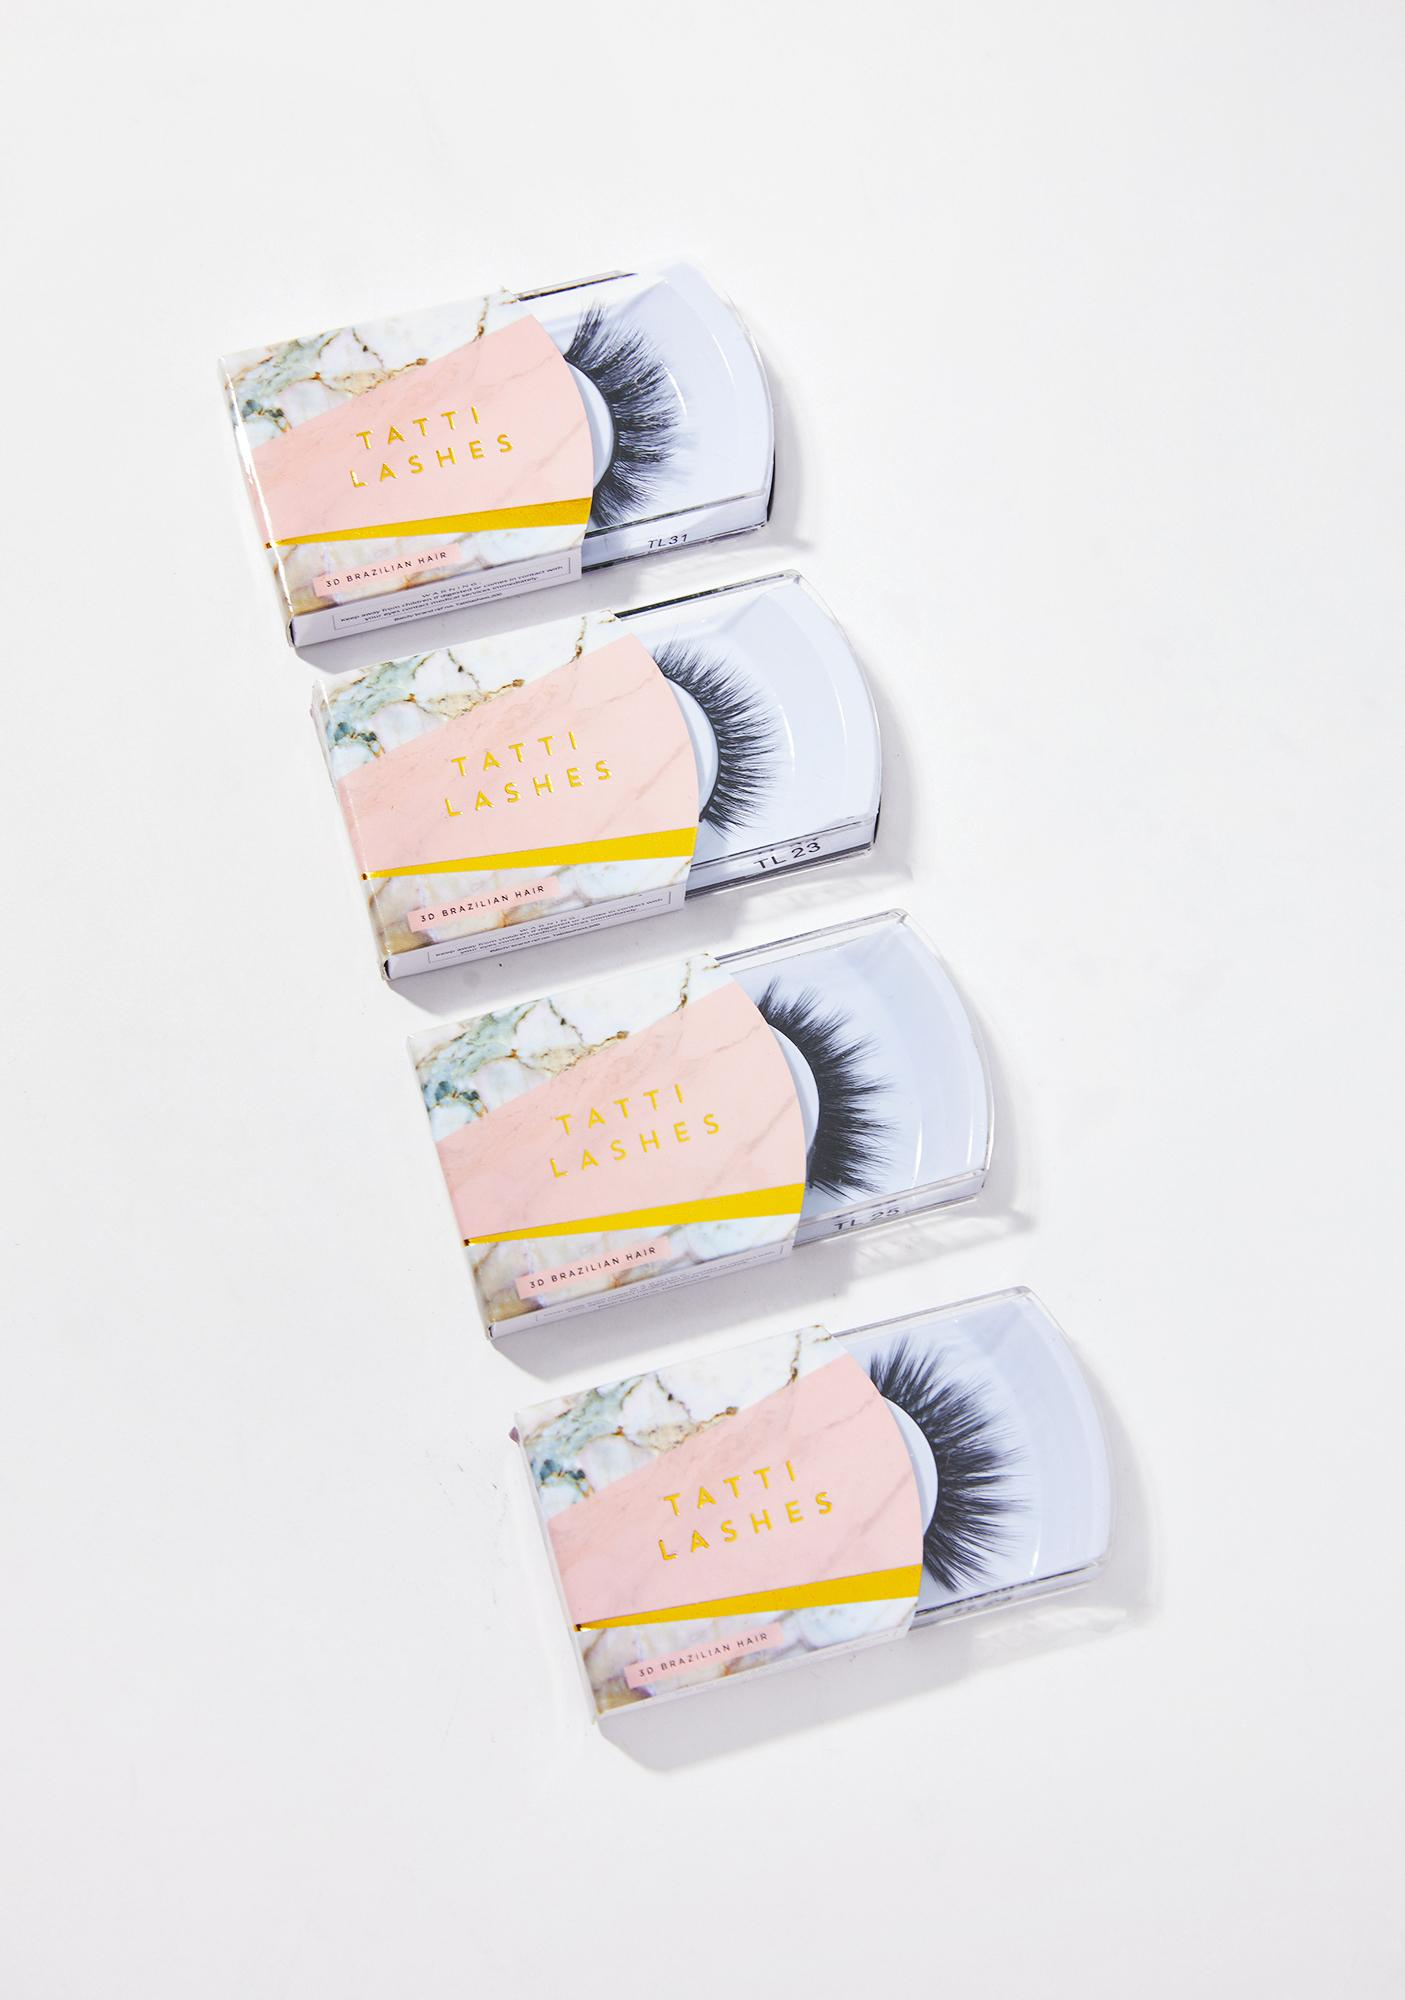 Tatti Lashes Lash Set